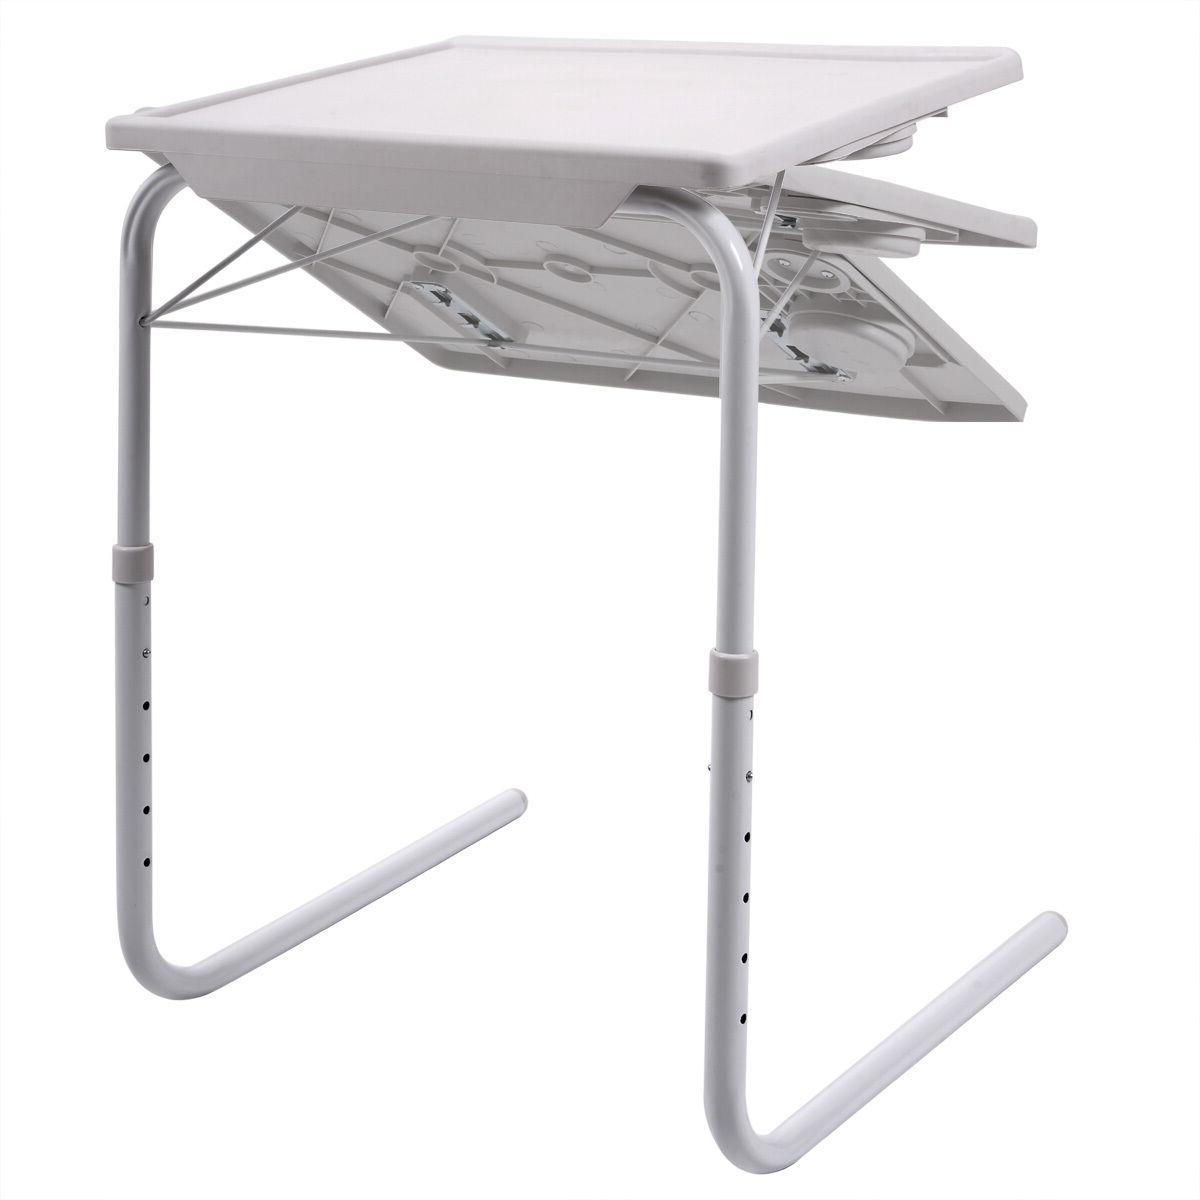 2 Table Adjustable Tray W/Cup Holder